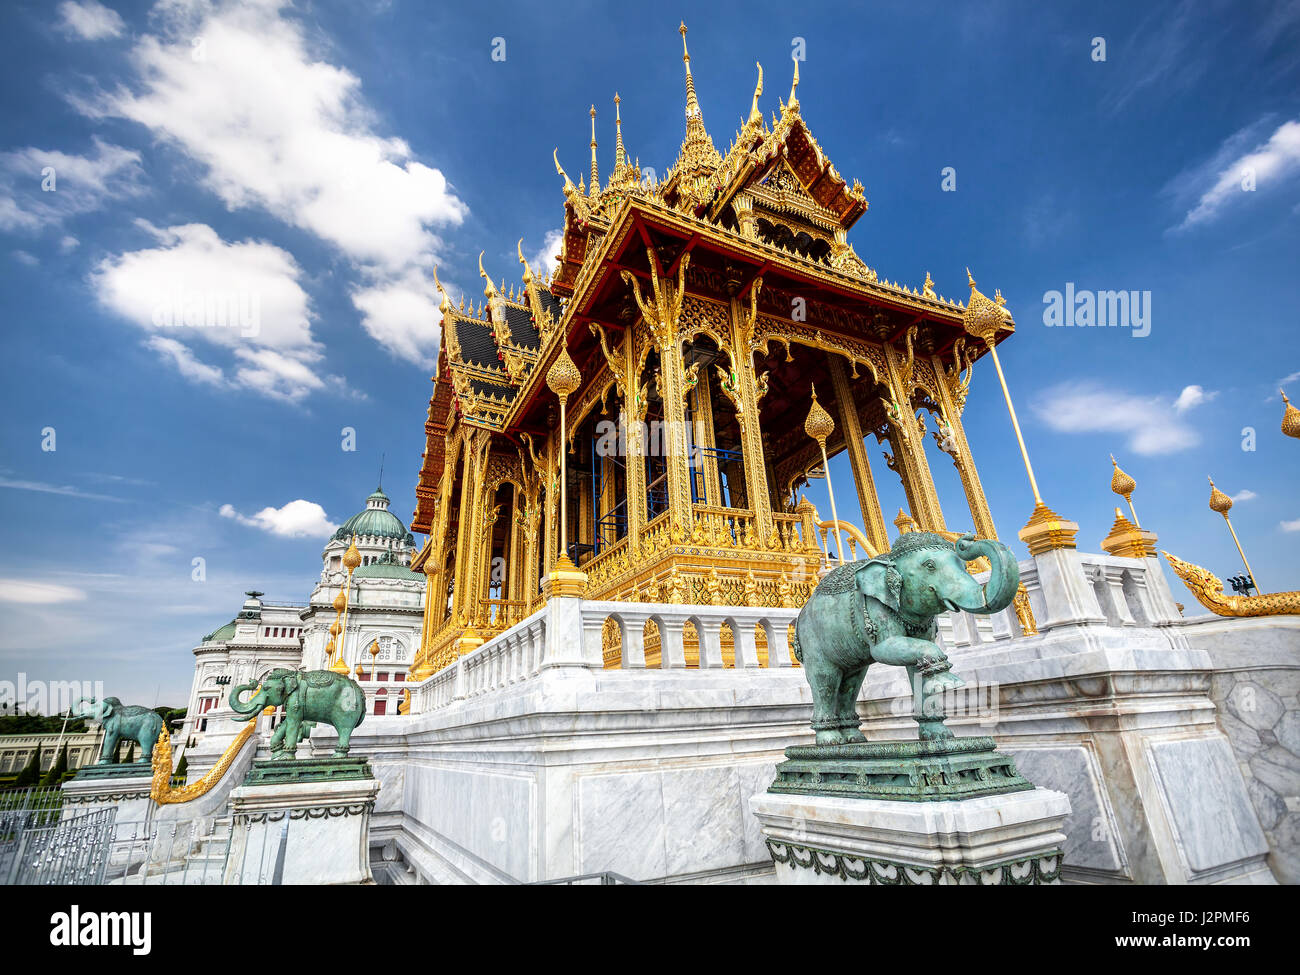 The Ananta Samakhom Throne Hall in Thai Royal Dusit Palace and green Elephant statues in Bangkok, Thailand - Stock Image